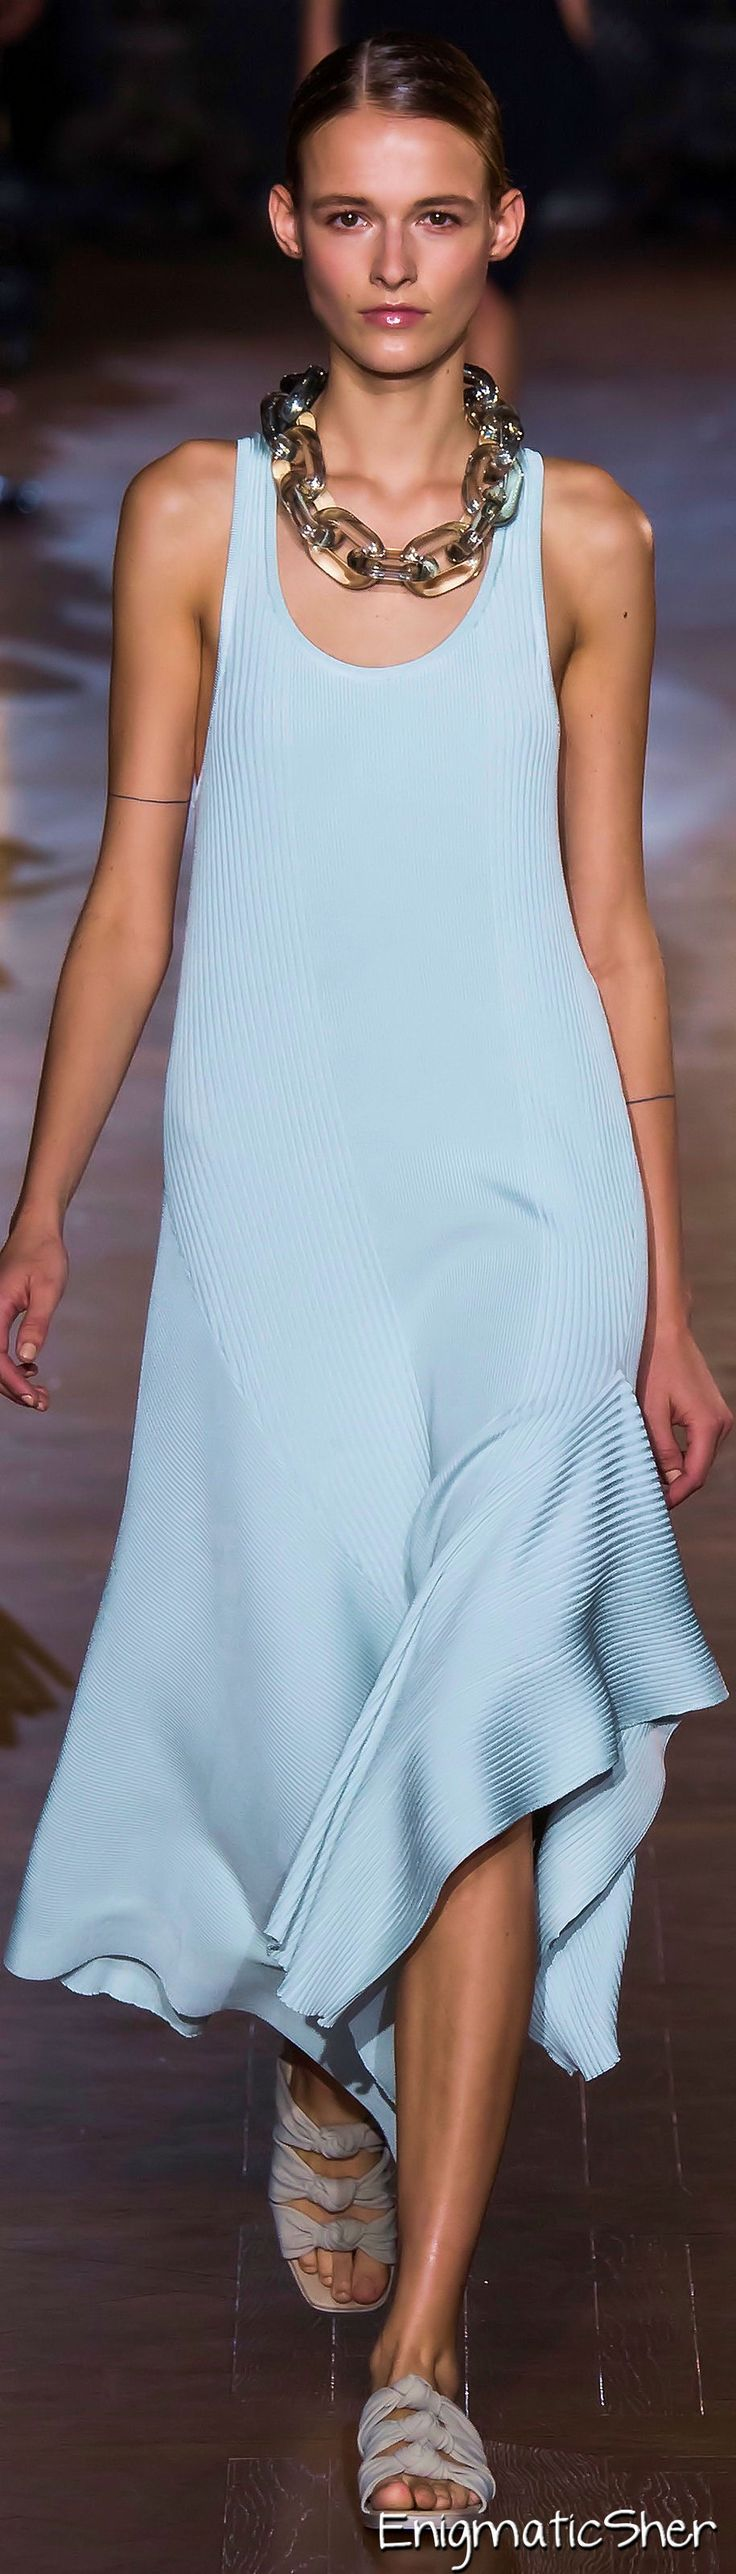 Stella McCartney Spring Summer 2015 Ready-To-Wear